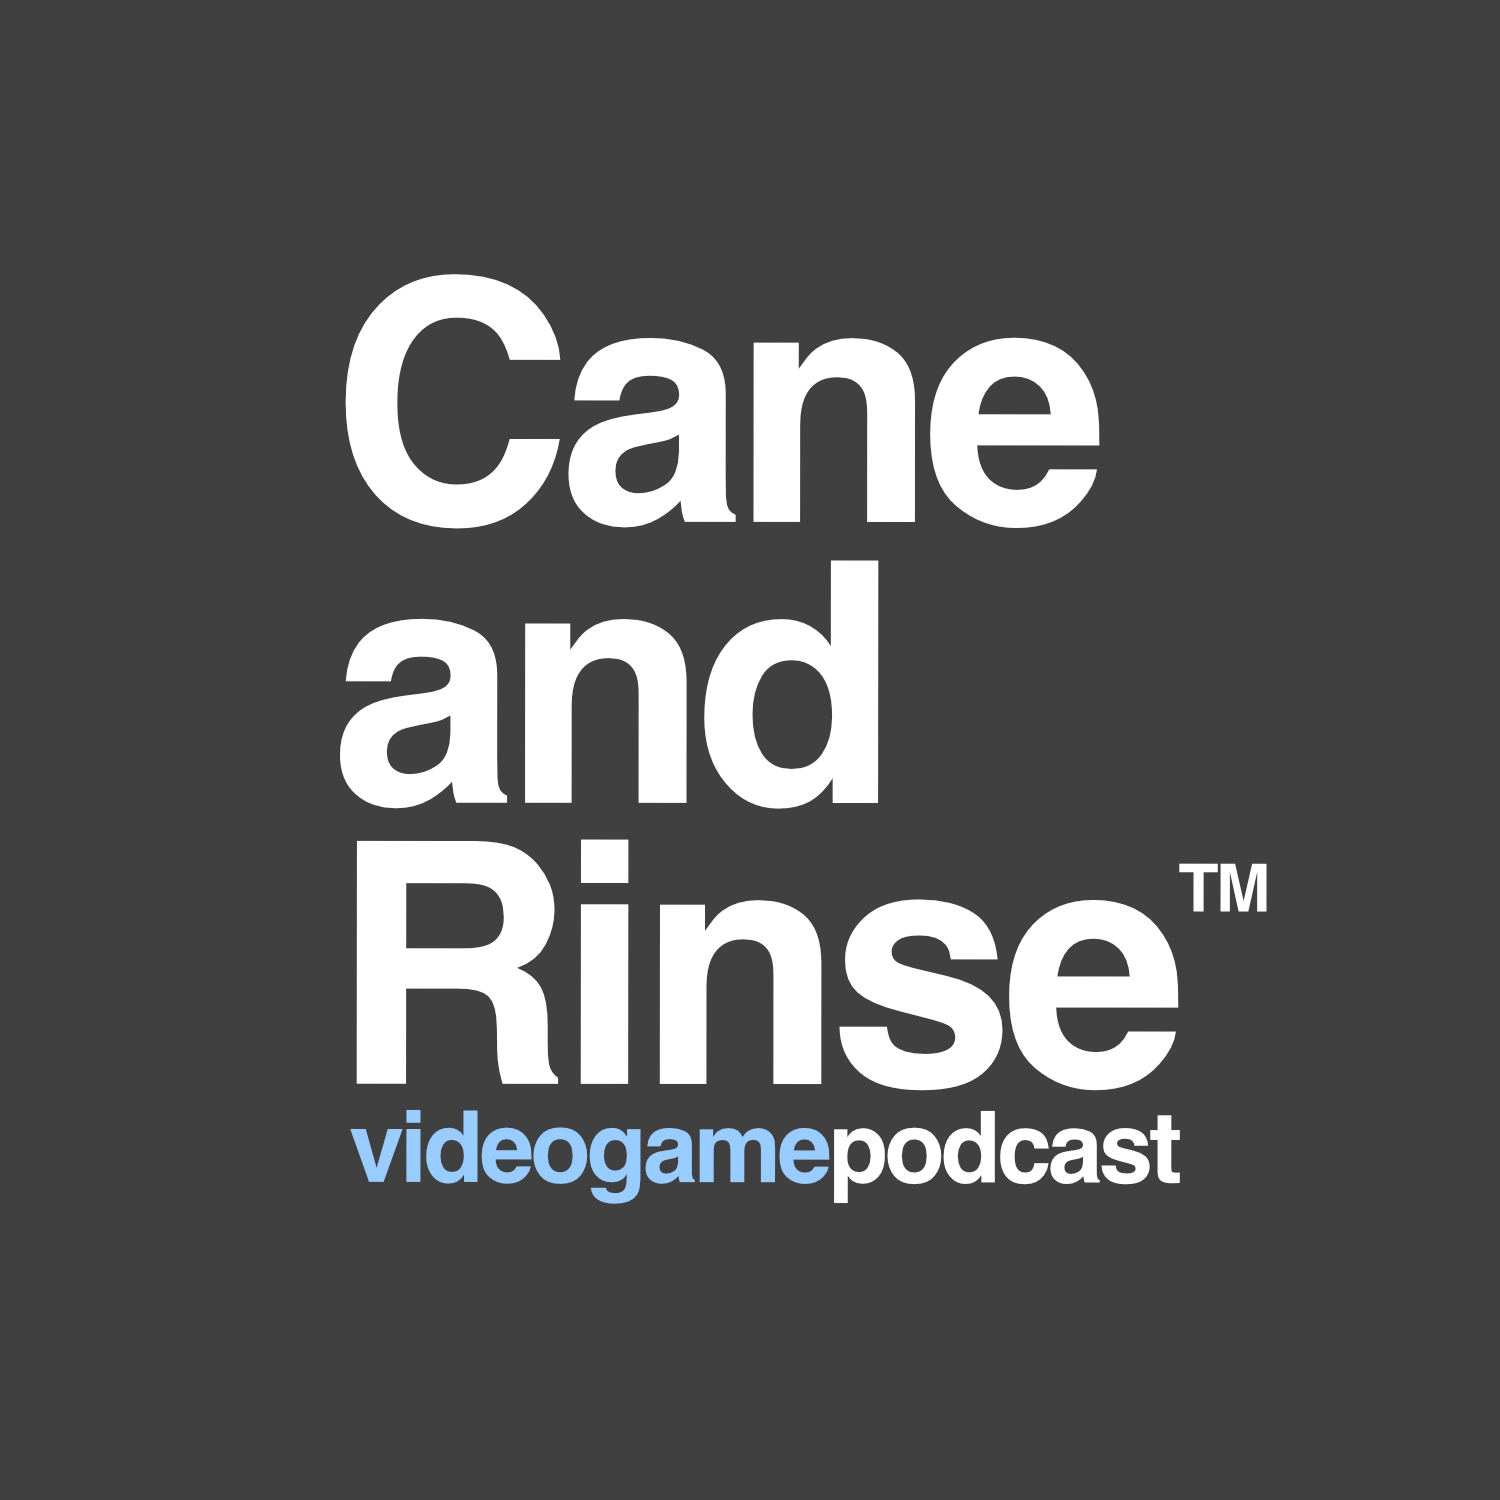 Cane and Rinse video game podcasts logo